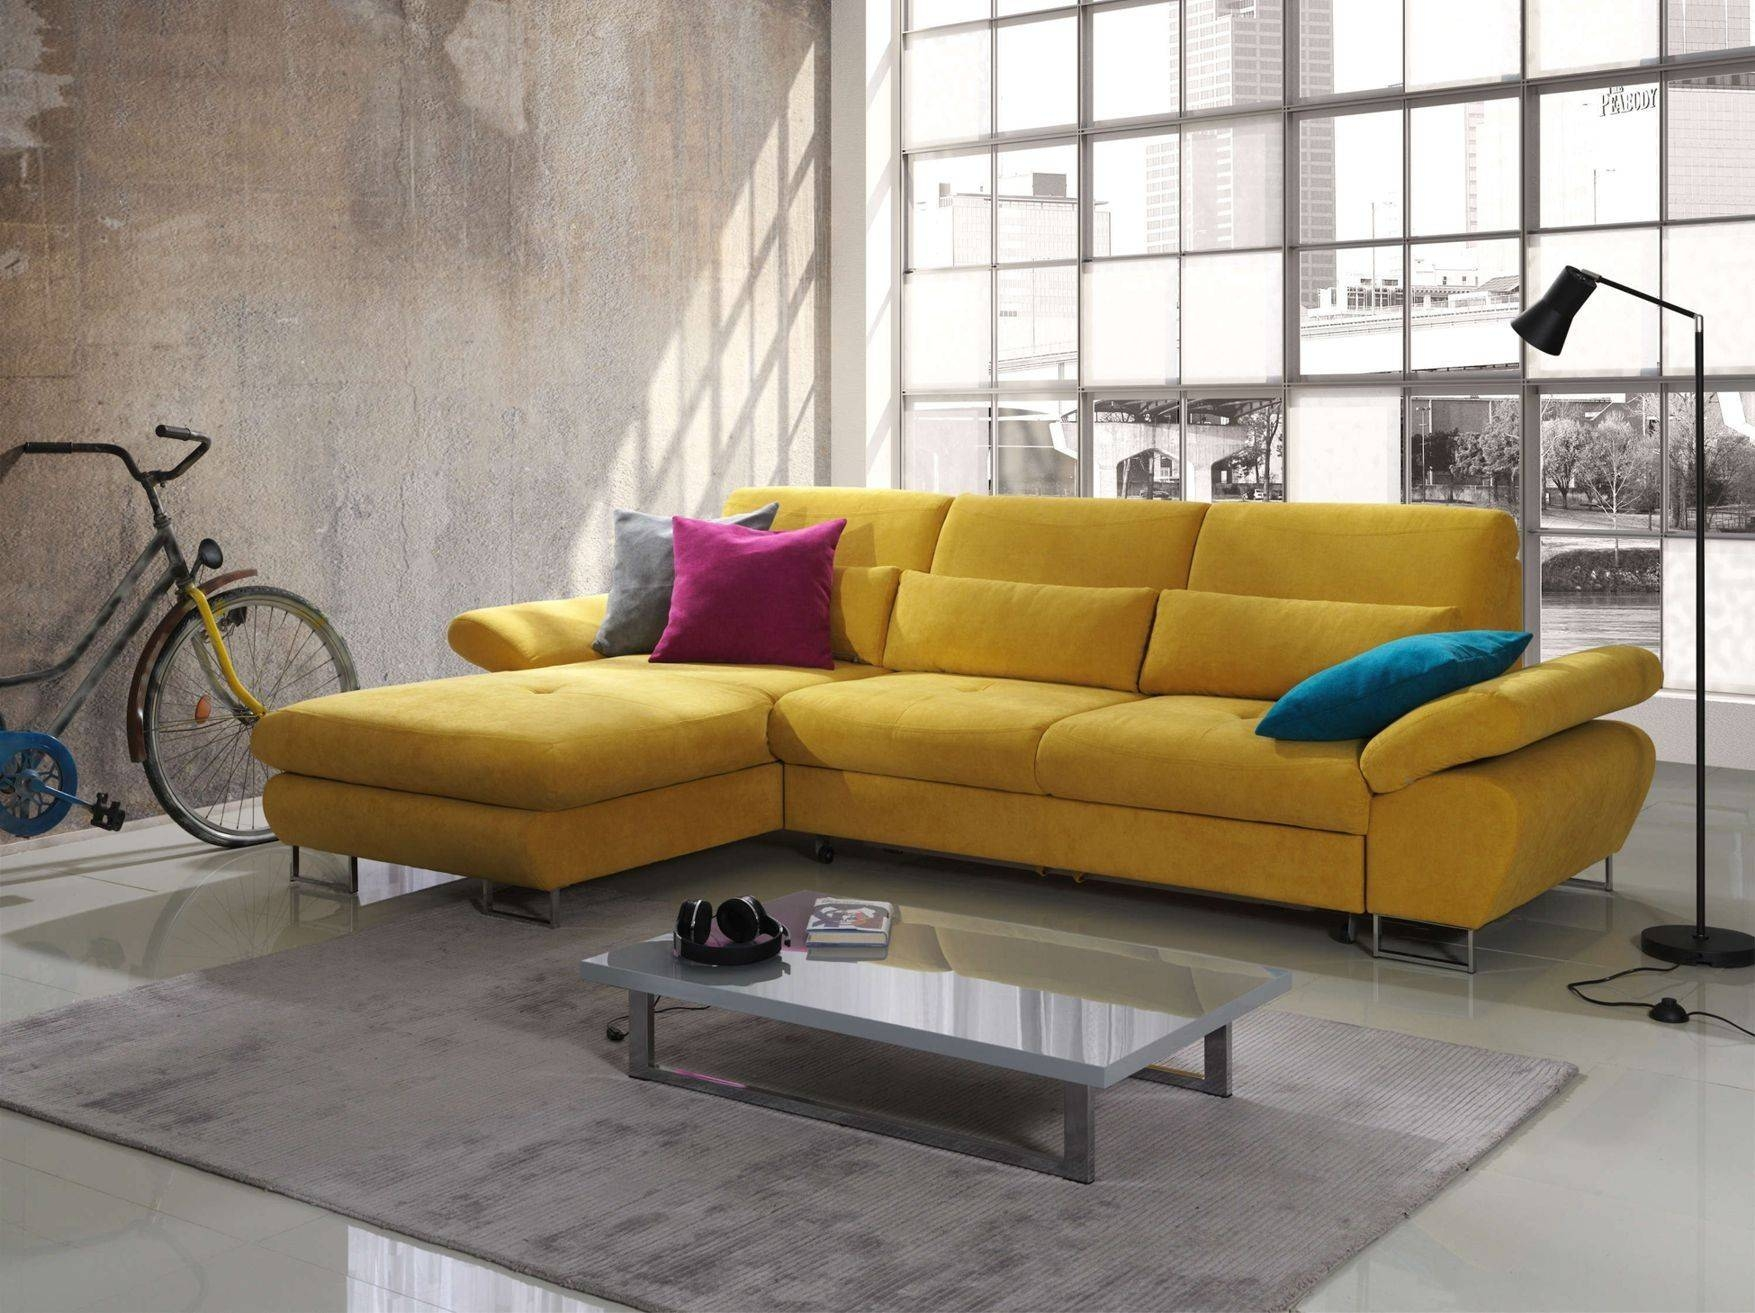 Apartment Sectional Sofa Canada | Tehranmix Decoration regarding Apartment Sectional Sofa With Chaise (Image 6 of 30)